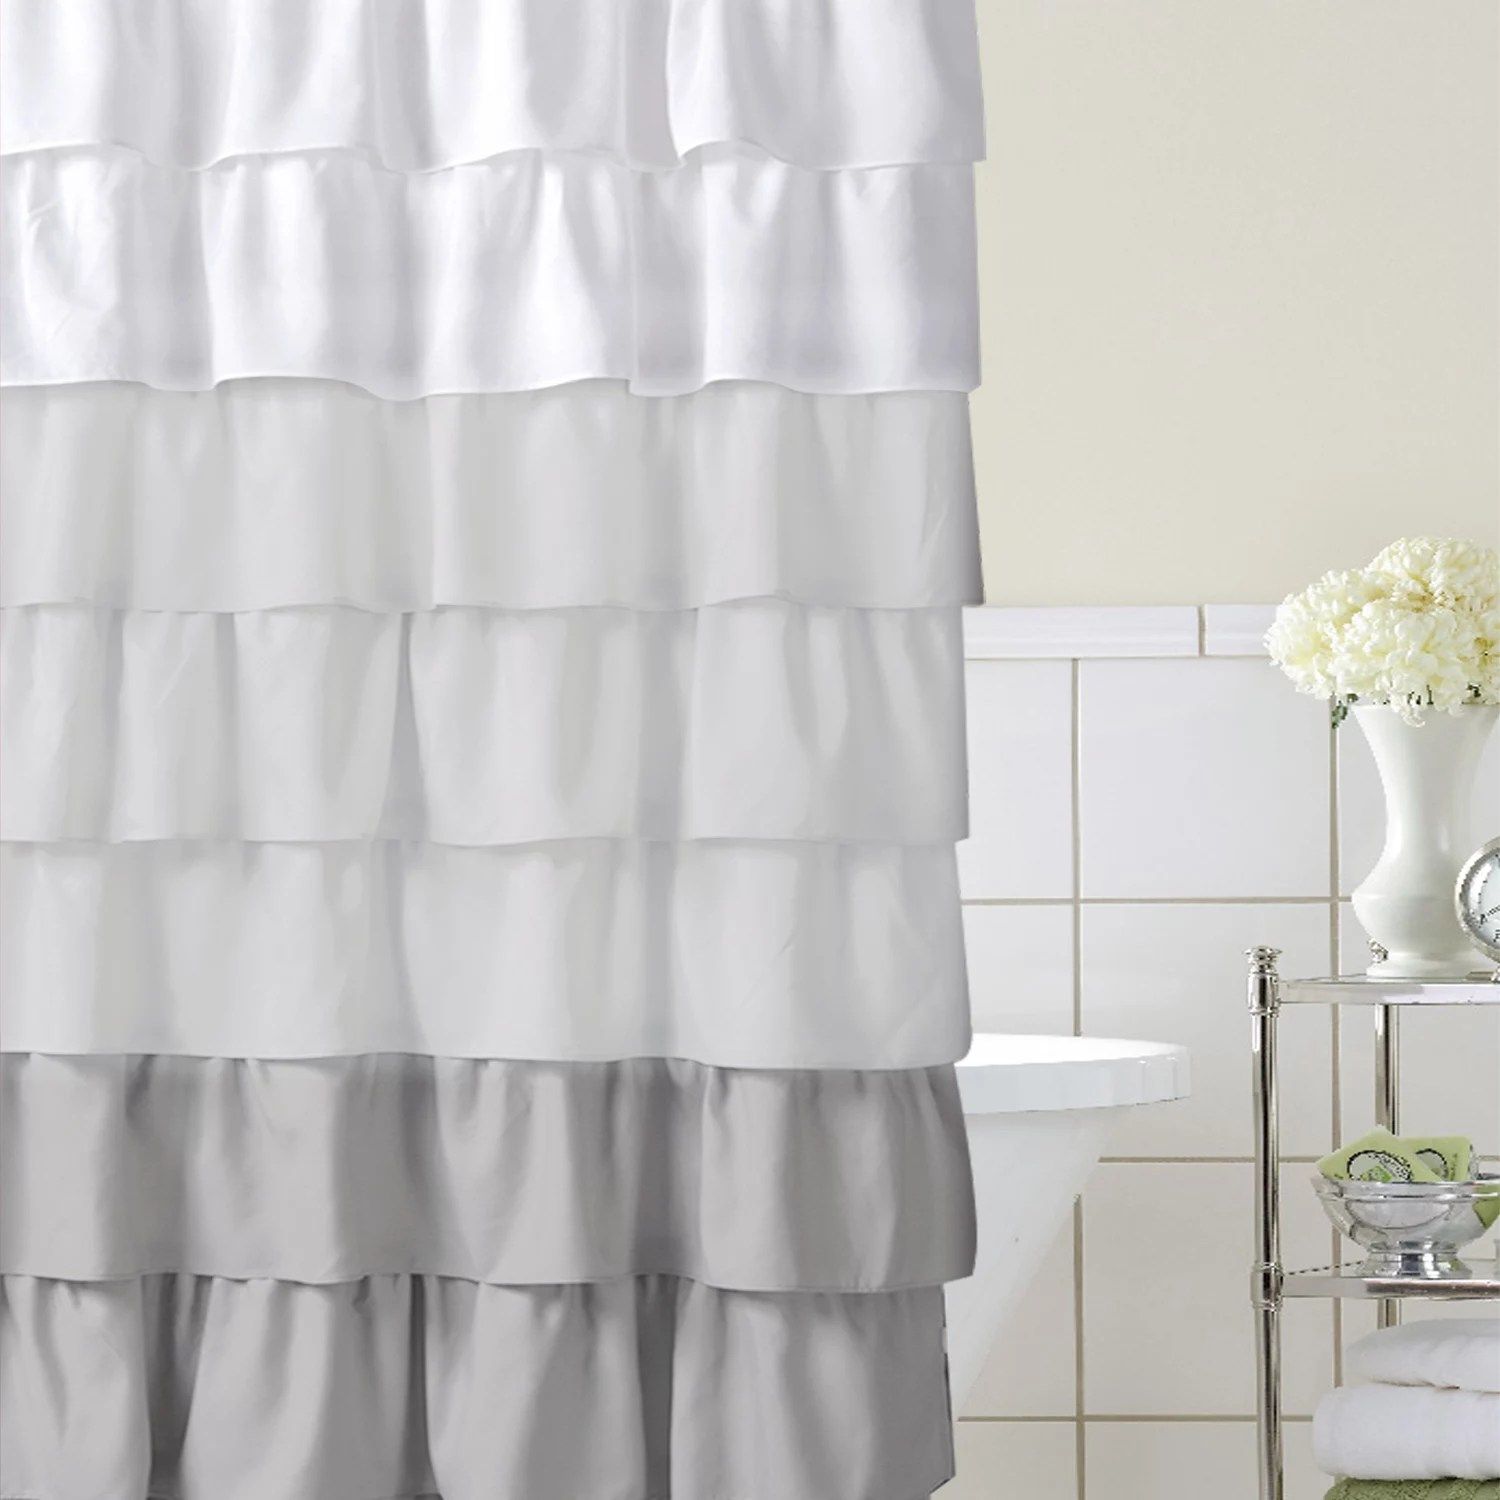 Solid Shower Curtains & Accessories Bathroom Bed & Bath Kohl's